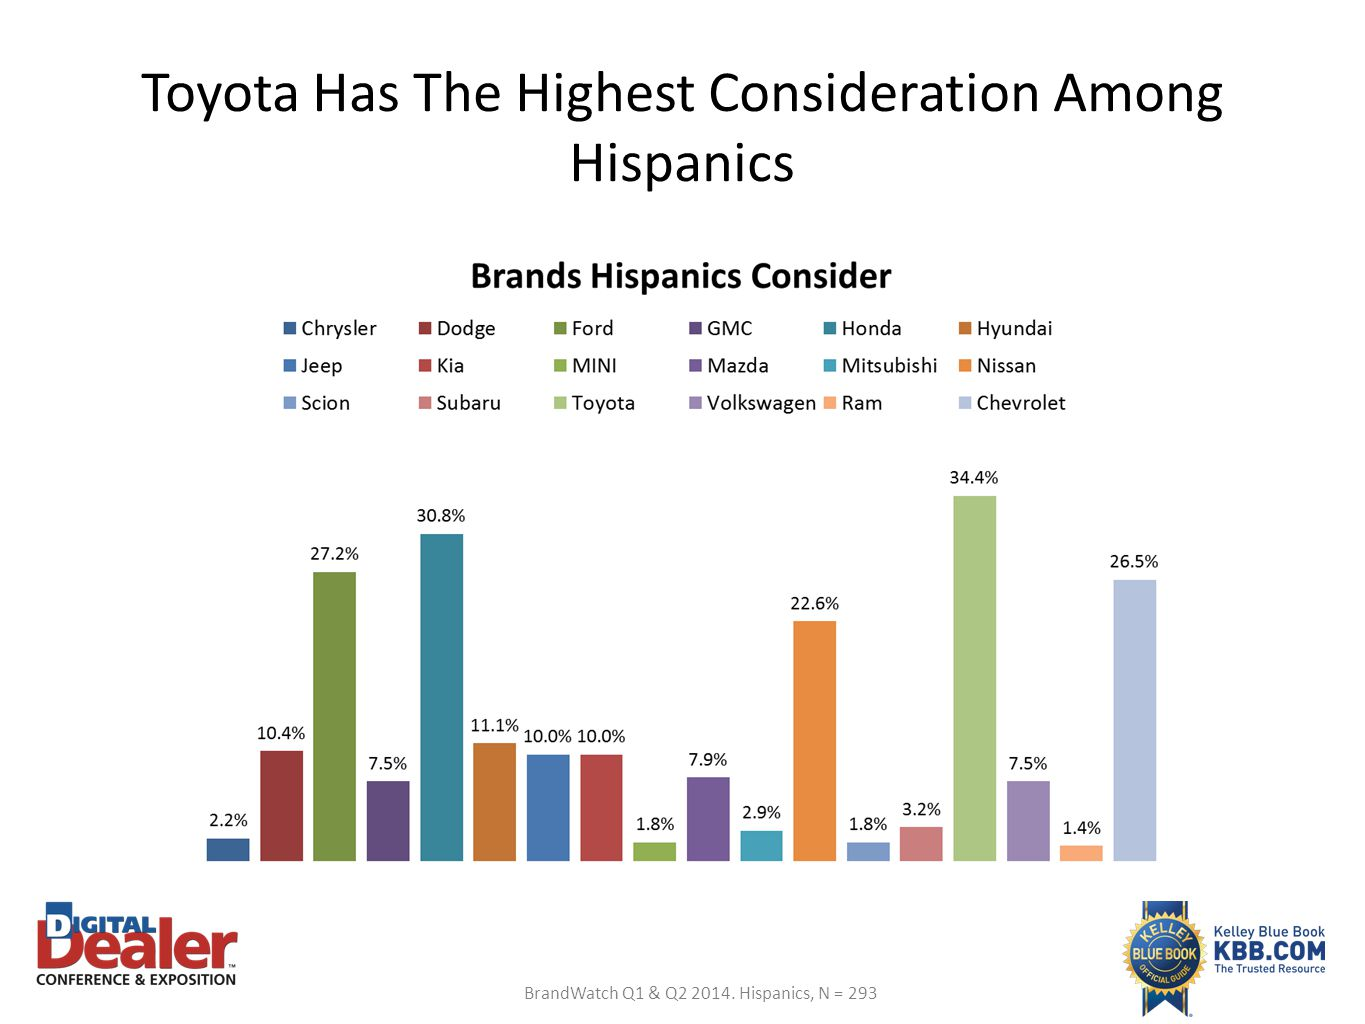 Toyota Has The Highest Consideration Among Hispanics